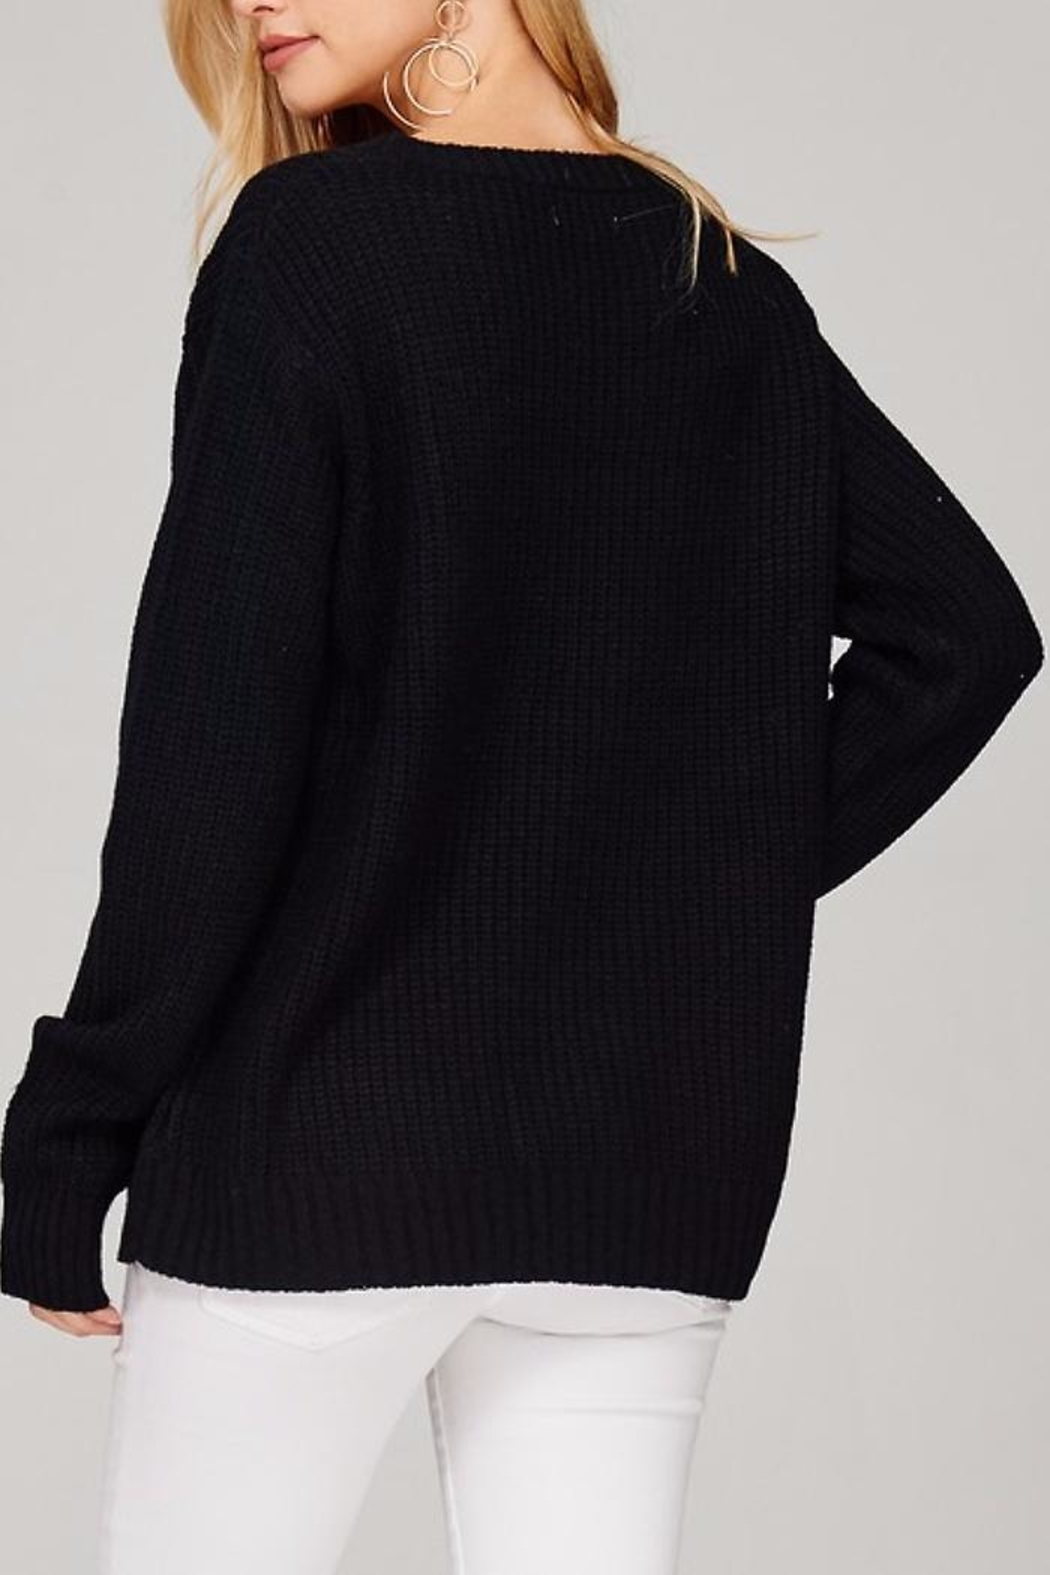 People Outfitter Kaylee's Floral Sweater - Side Cropped Image